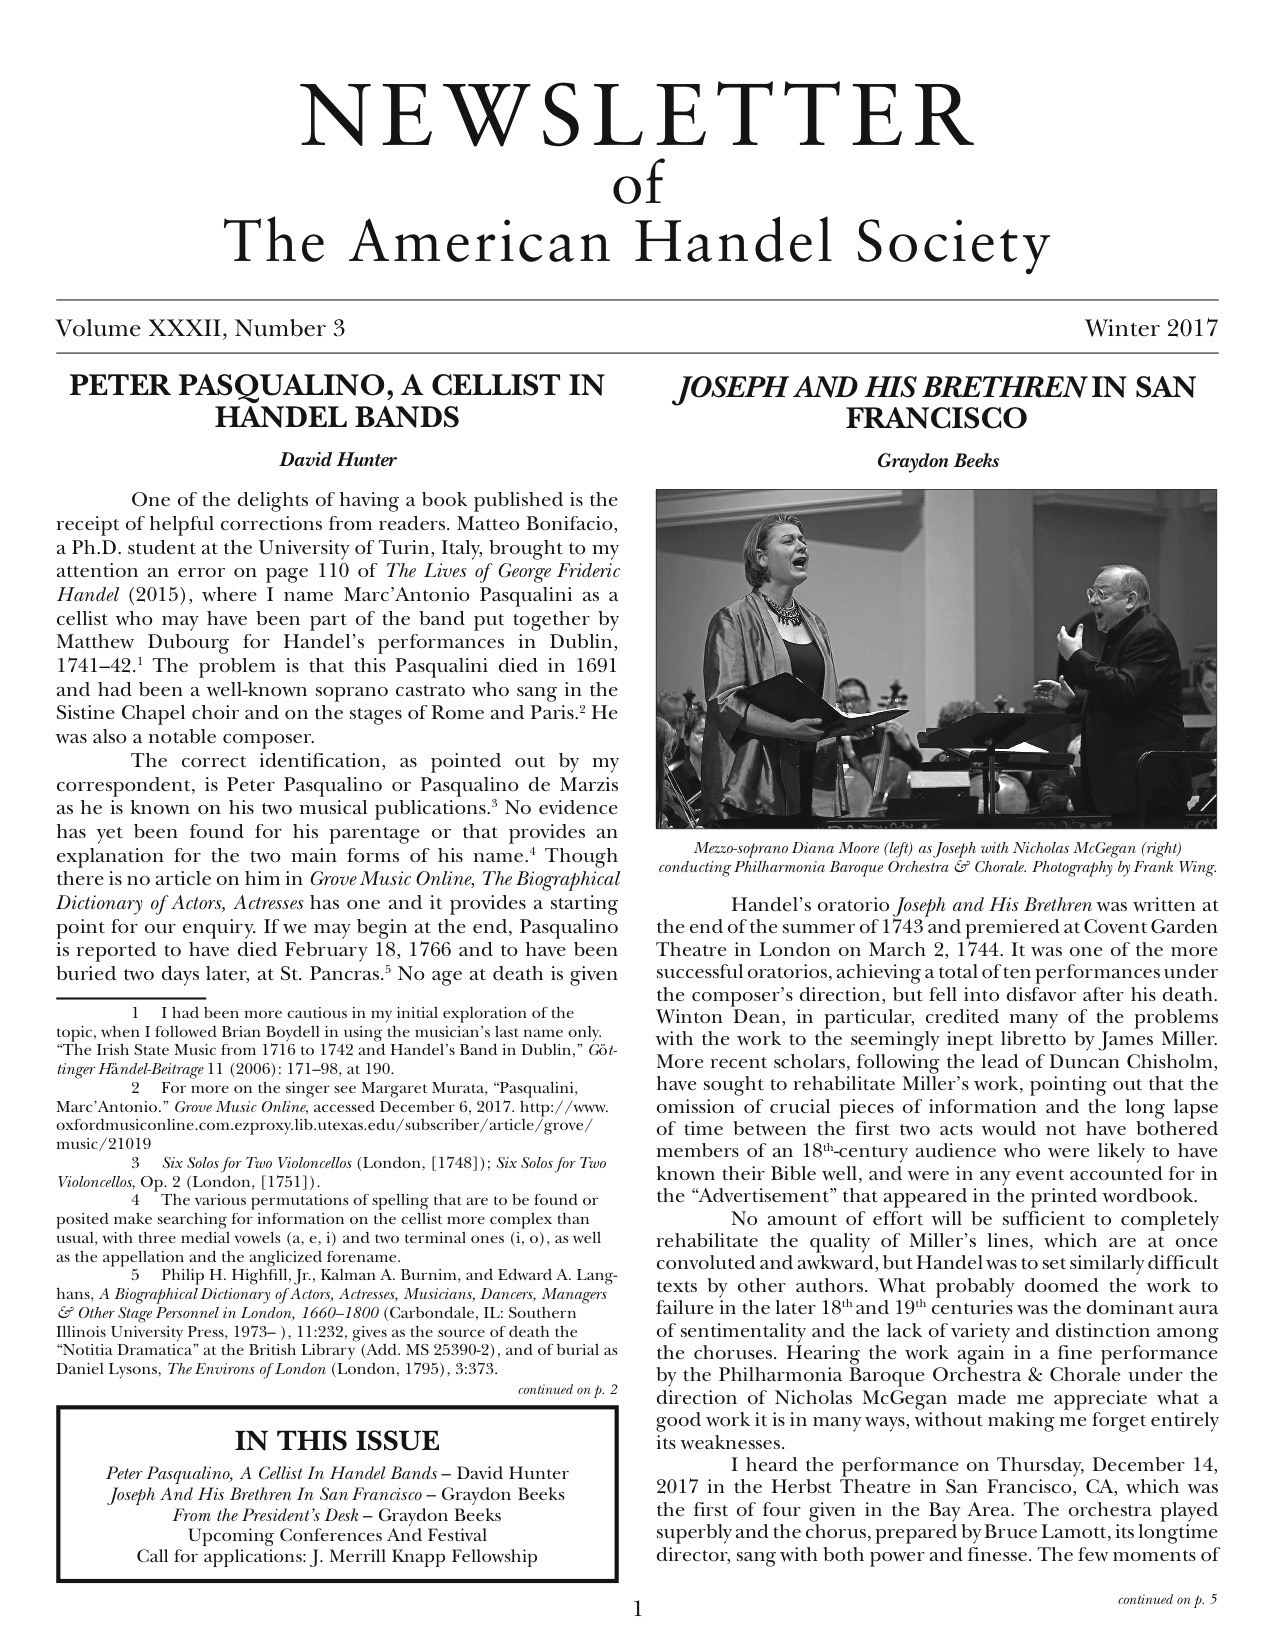 Front cover of American Handel Society Newsletter